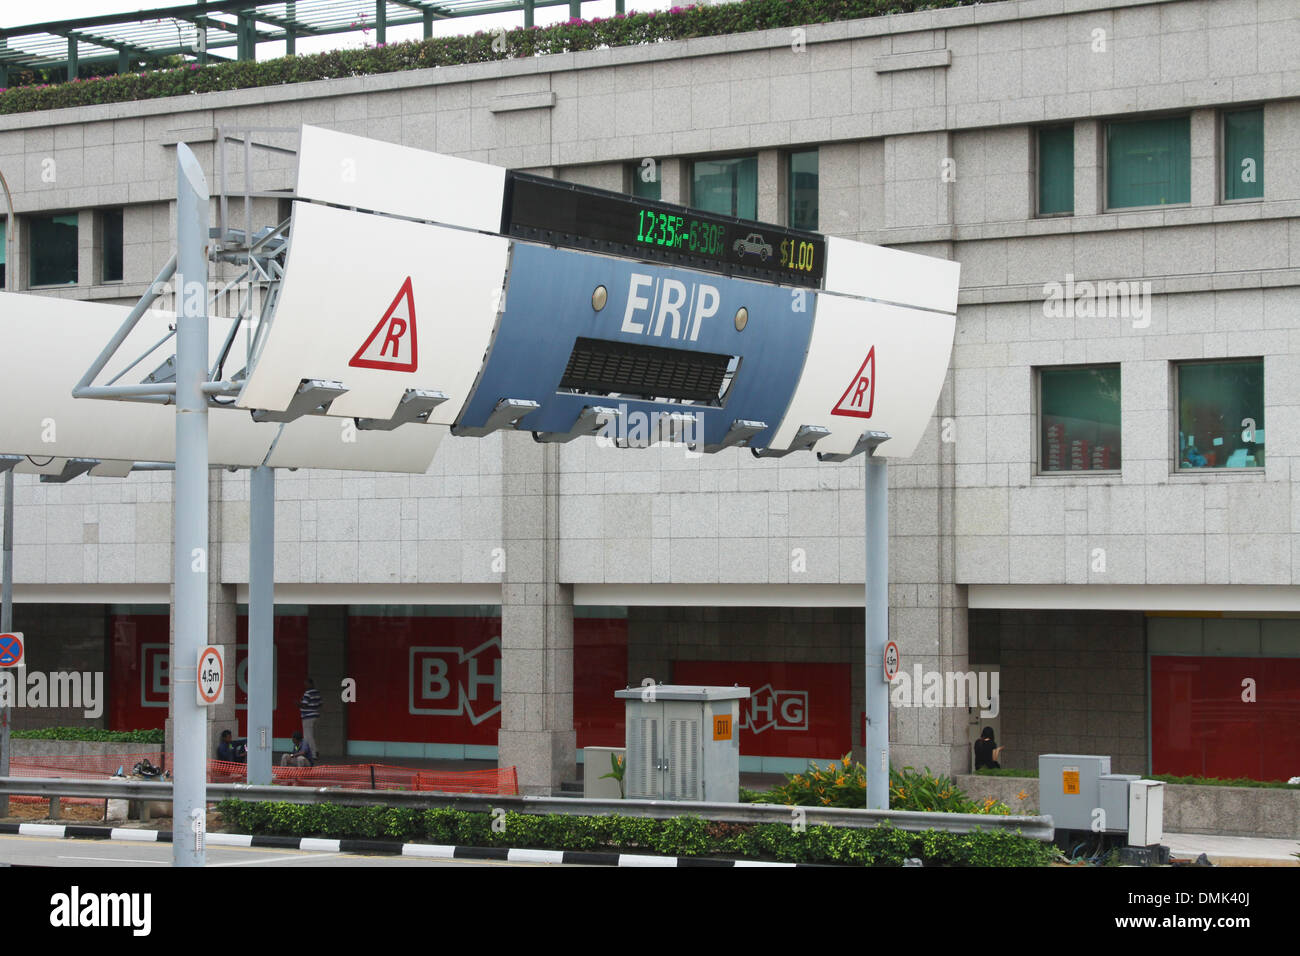 ERP, Electronic Road Pricing. Automated sensor for collecting road tolls. Singapore. - Stock Image